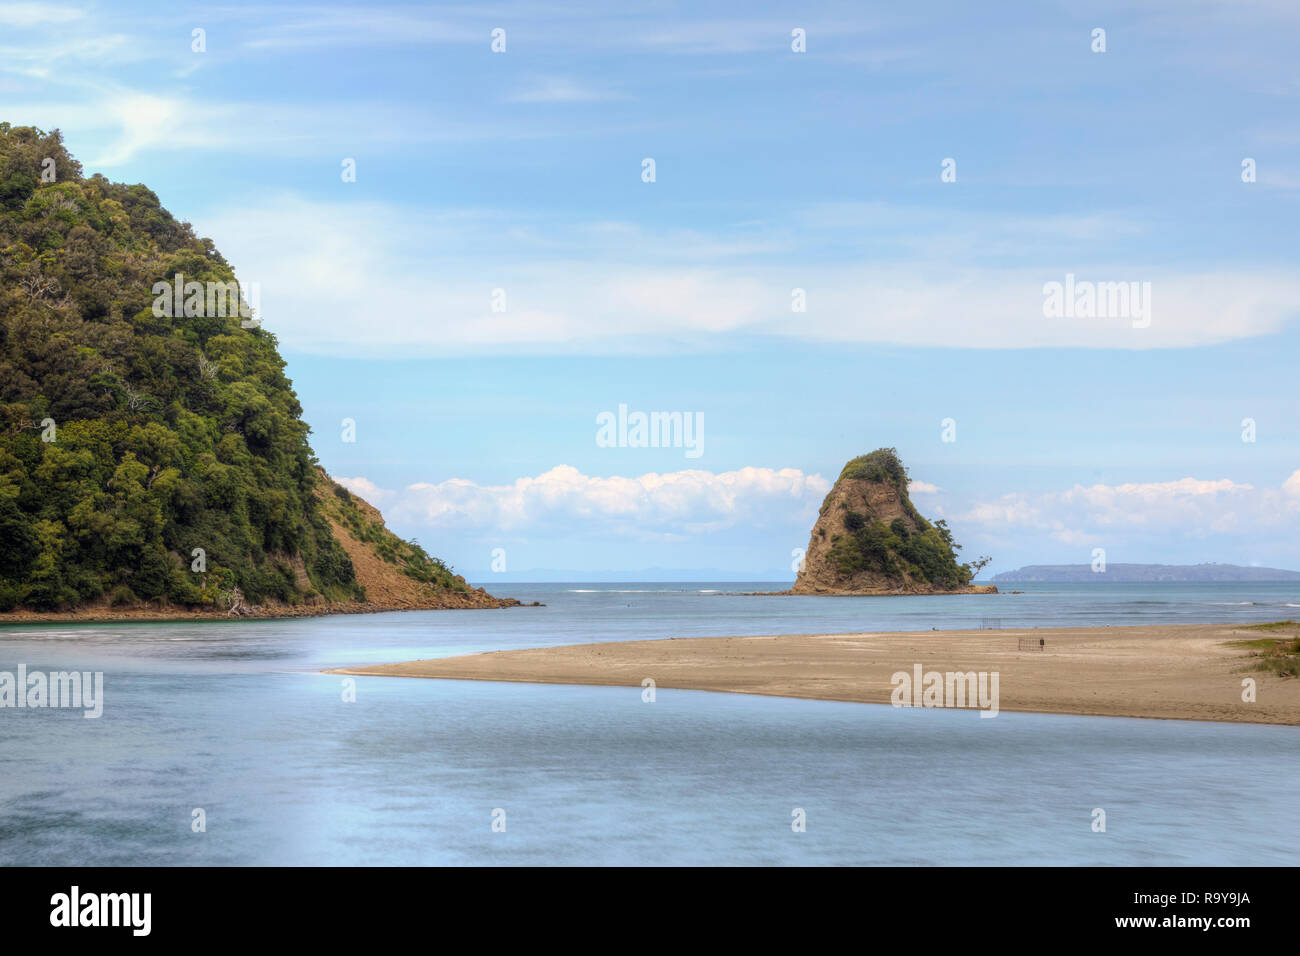 Waiwera, Auckland, North Island, New Zealand - Stock Image